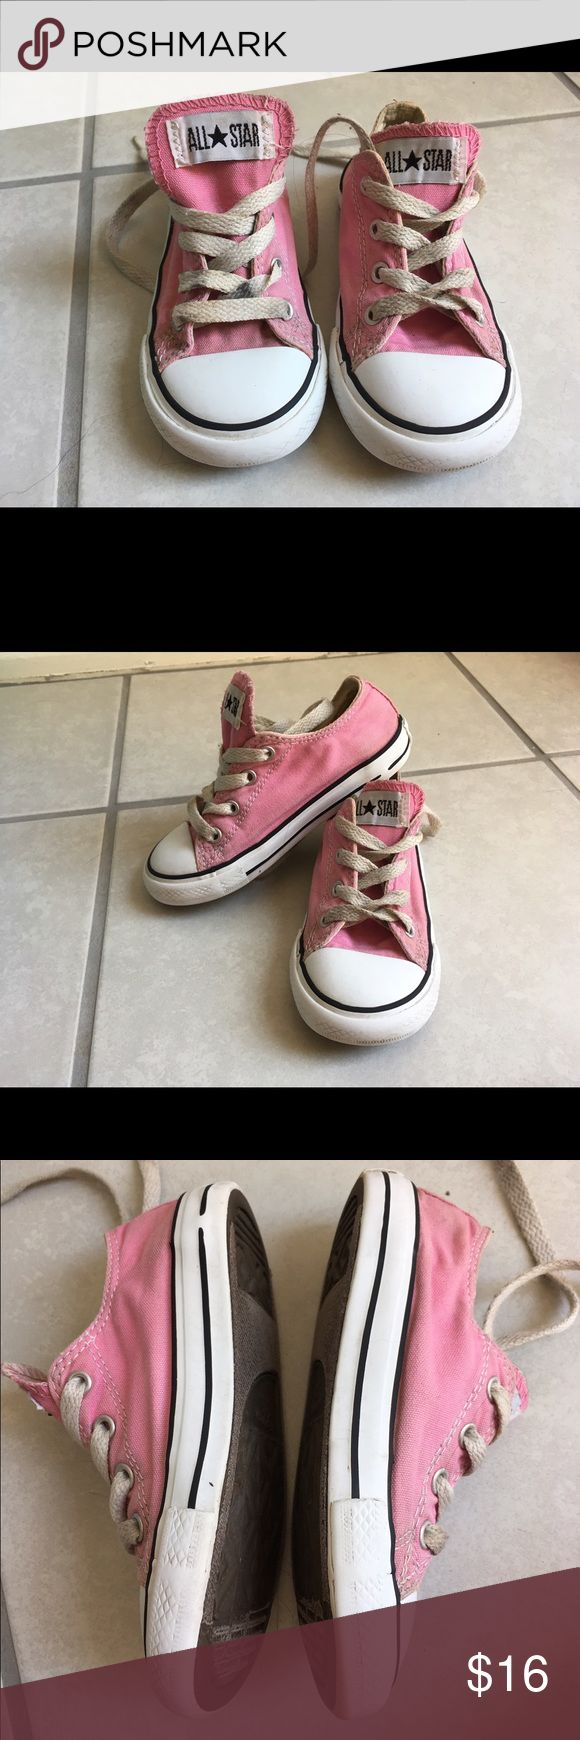 Toddler Converse Used condition! Just cleaned, but could use some new laces- those I couldn't get very clean. They are a size 9 in toddler girls, classic pink, with loads of life left in them. Overall they're in amazing condition for the price, please look at all pictures for condition- if you cave any questions feel free to ask! I have more little girls shoes in my closet! Bundle for discounts! Converse Shoes Sneakers